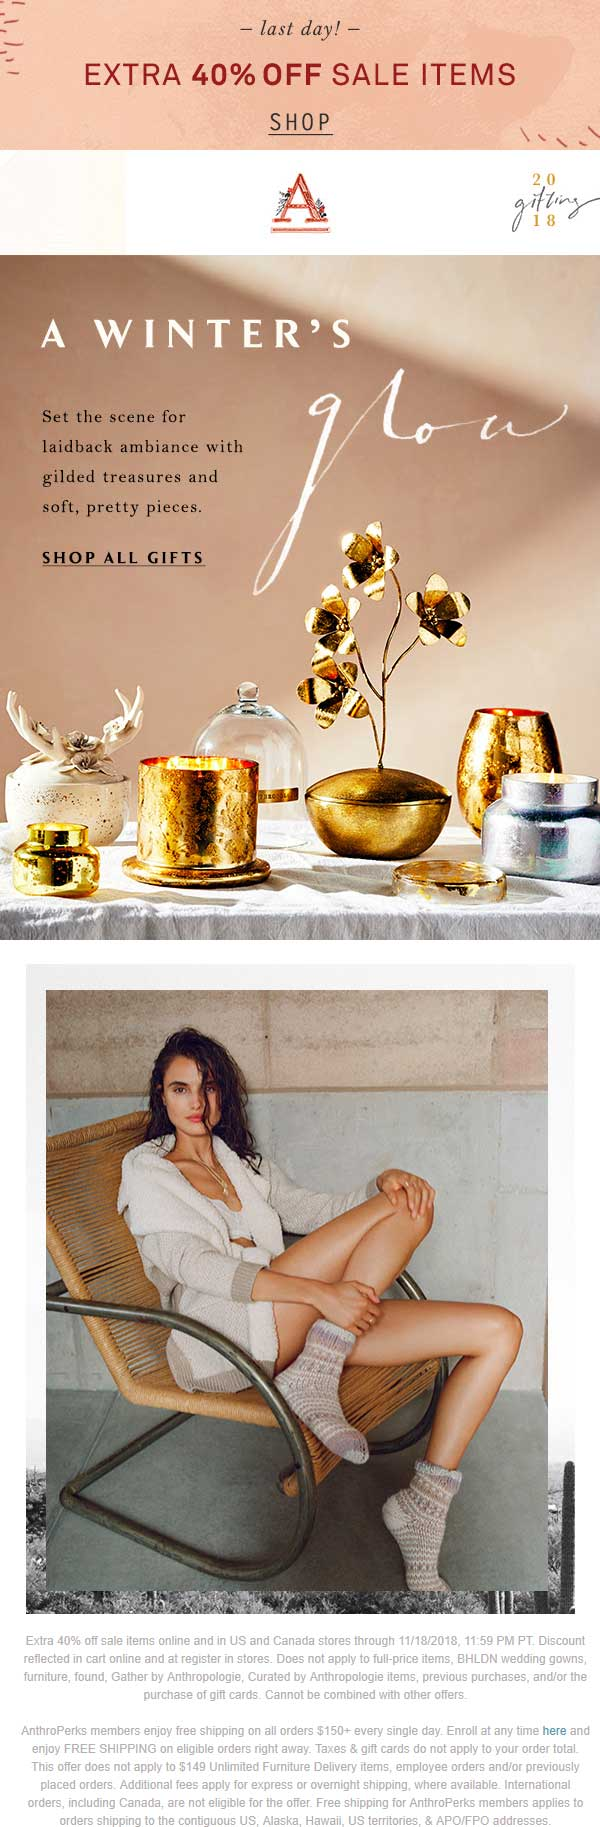 Anthropologie Coupon May 2019 Extra 40% off sale items today at Anthropologie, ditto online